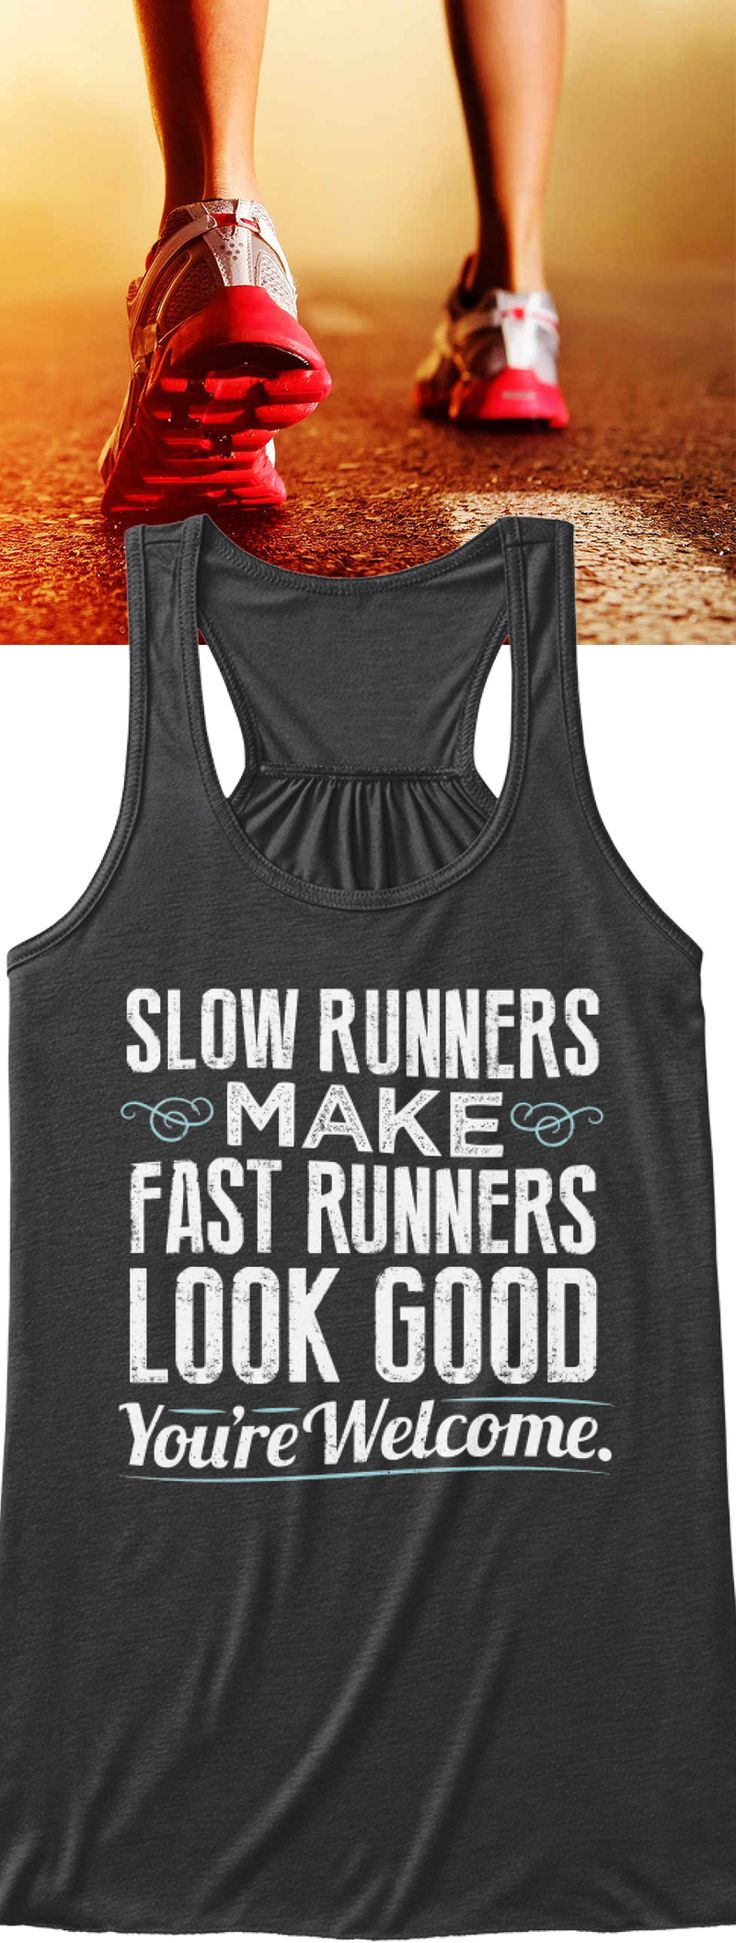 Slow Runners Make Fast Runners Look Good. You're Welcome! Tank Top | Available in several styles and colors. Reserve yours by clicking the image before they are gone!